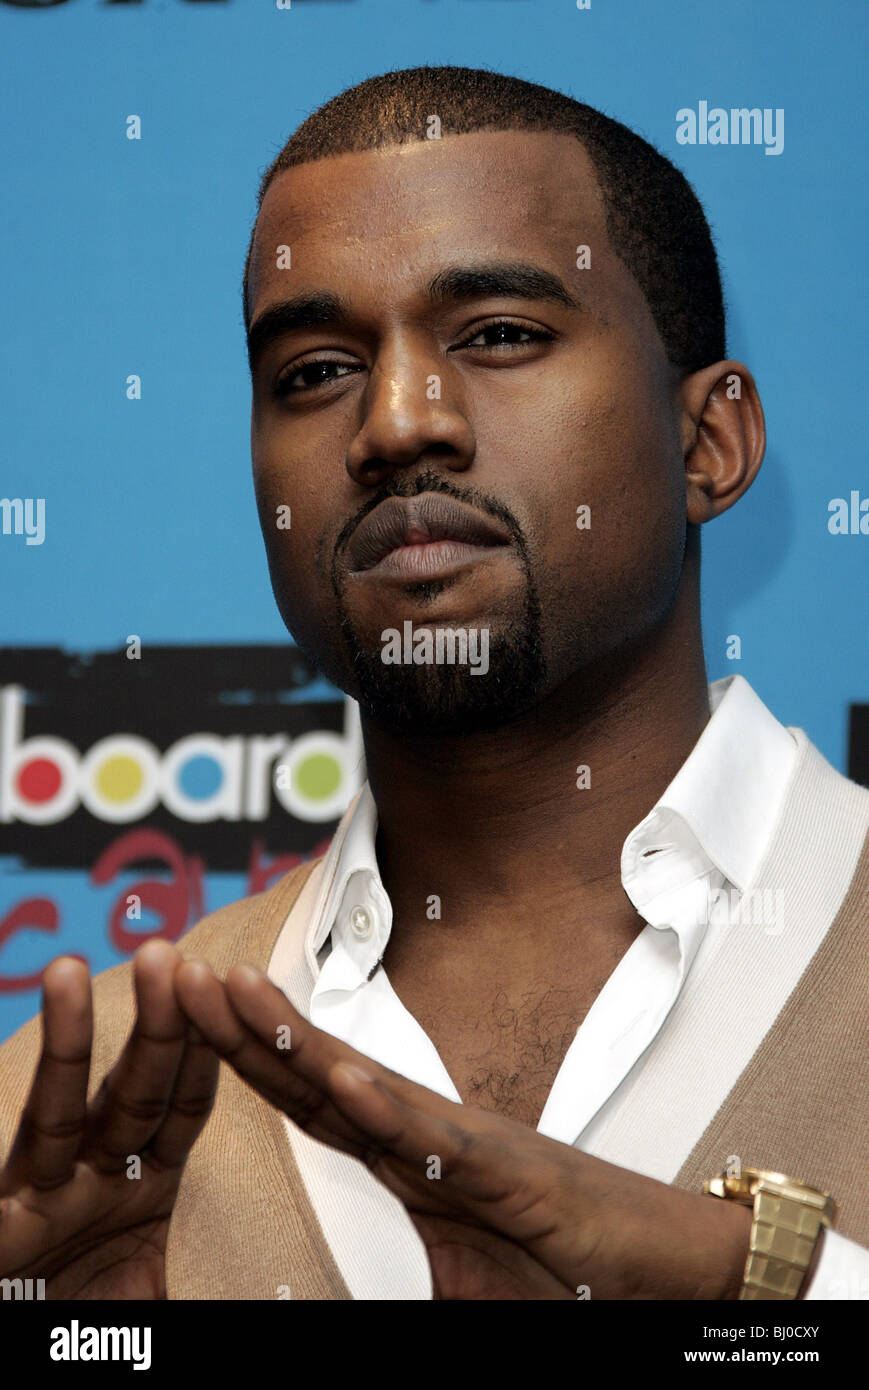 KANYE WEST SINGER MGM GRAND ARENA  LAS VEGAS  USA 06/12/2005 Stock Photo